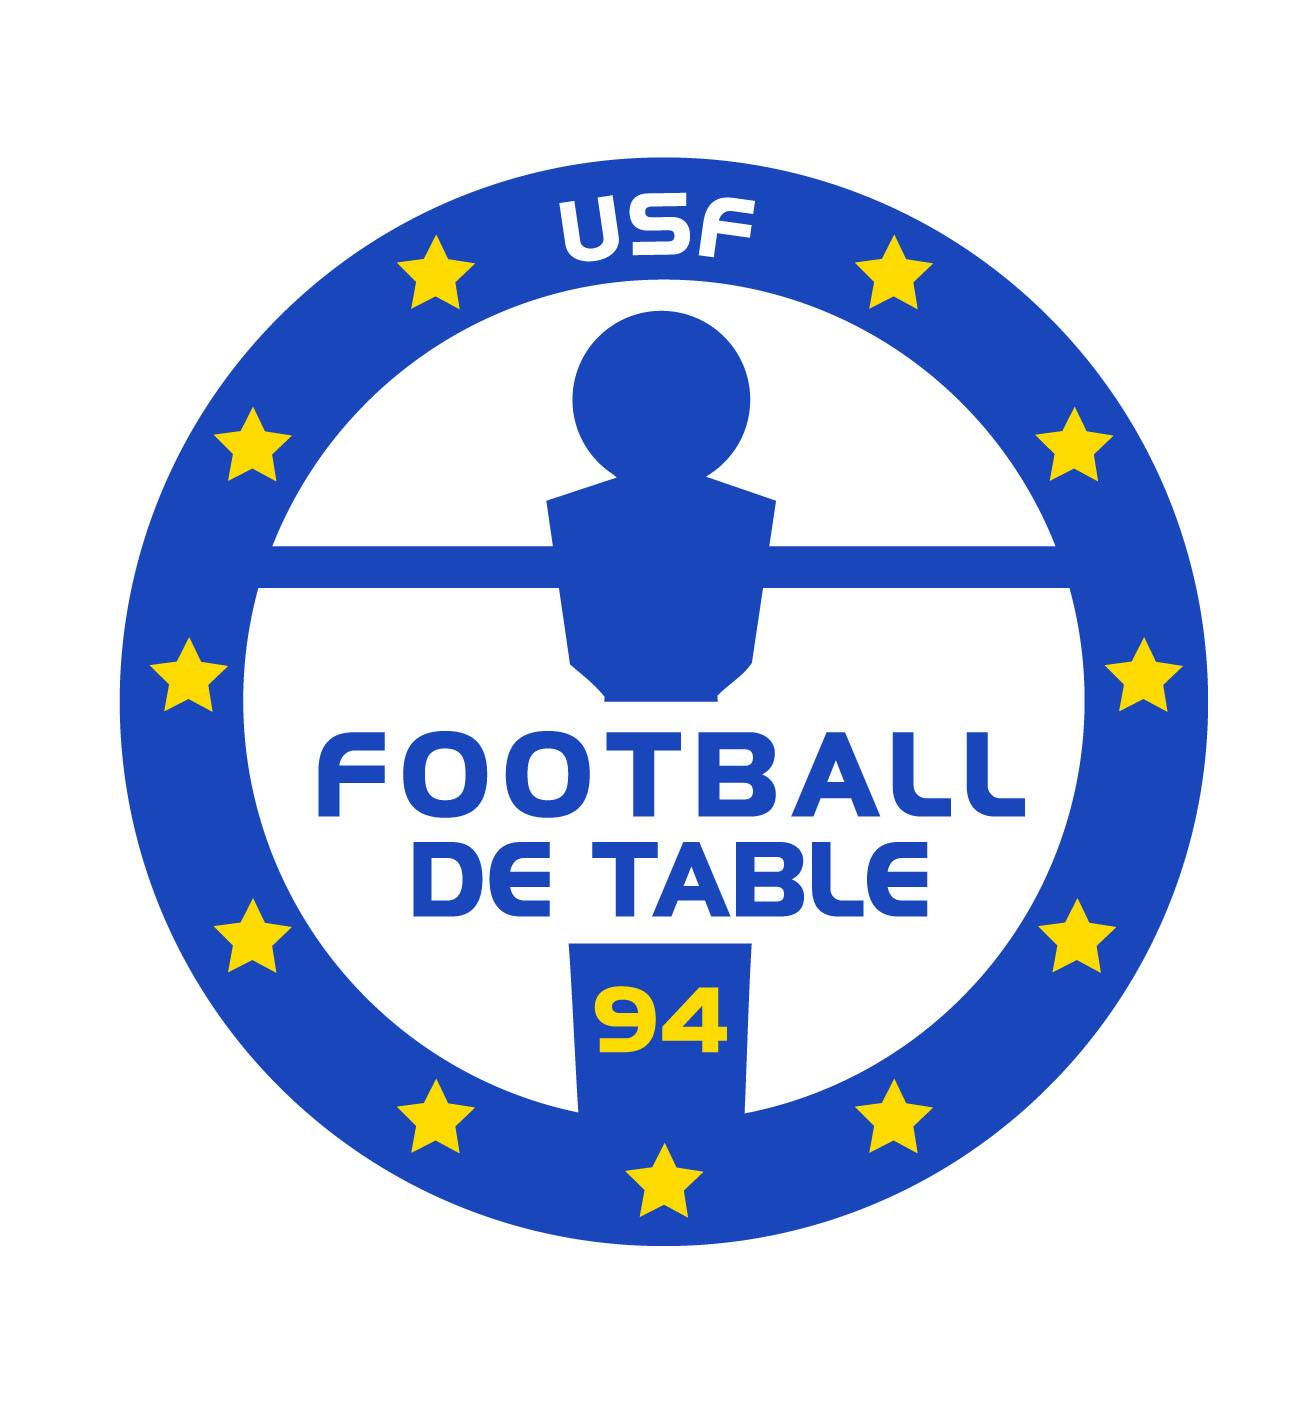 https://static.blog4ever.com/2015/09/808507/USF-Football-de-Table.jpg